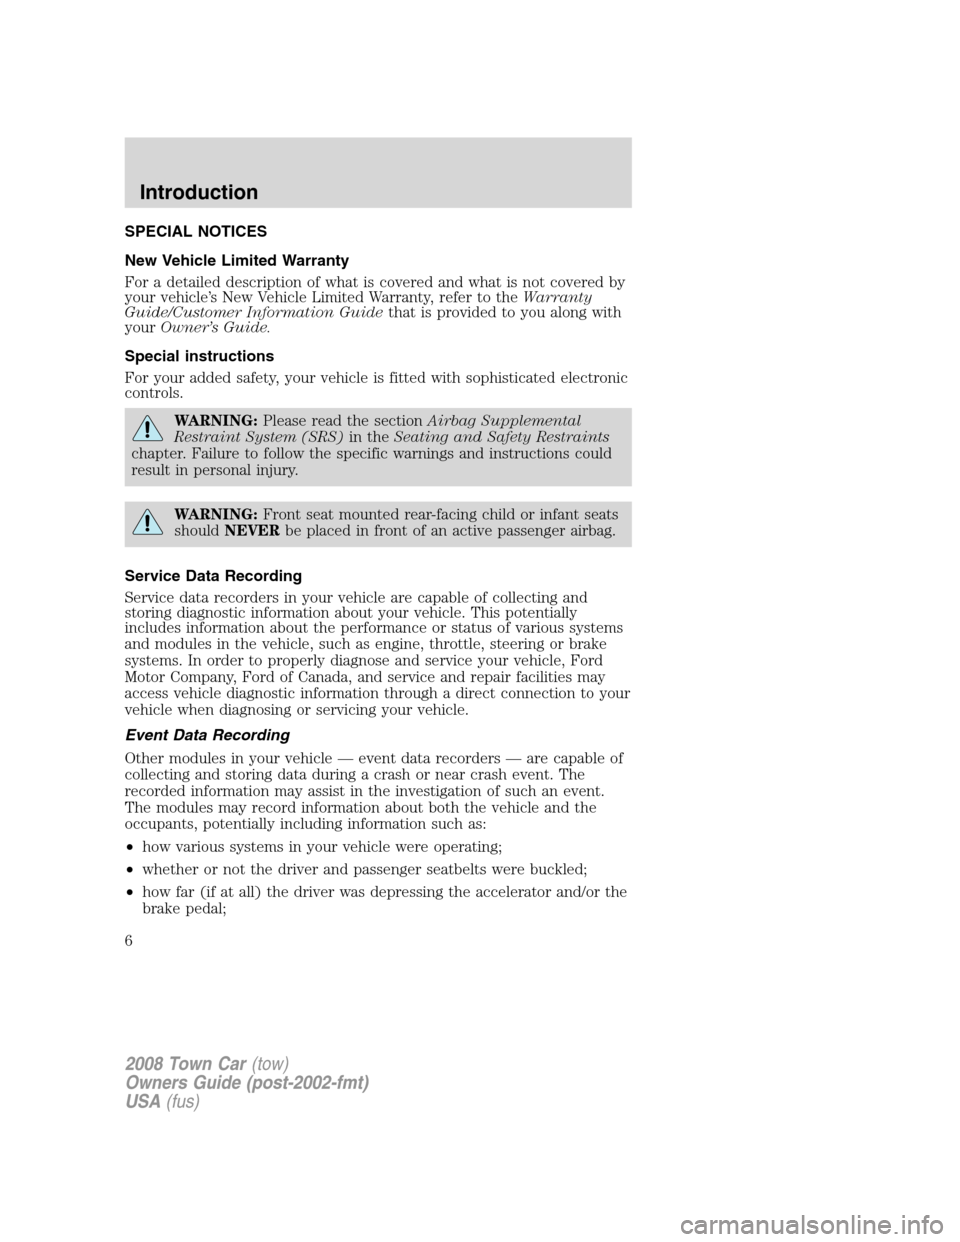 LINCOLN TOWN CAR 2008  Owners Manual, Page 6